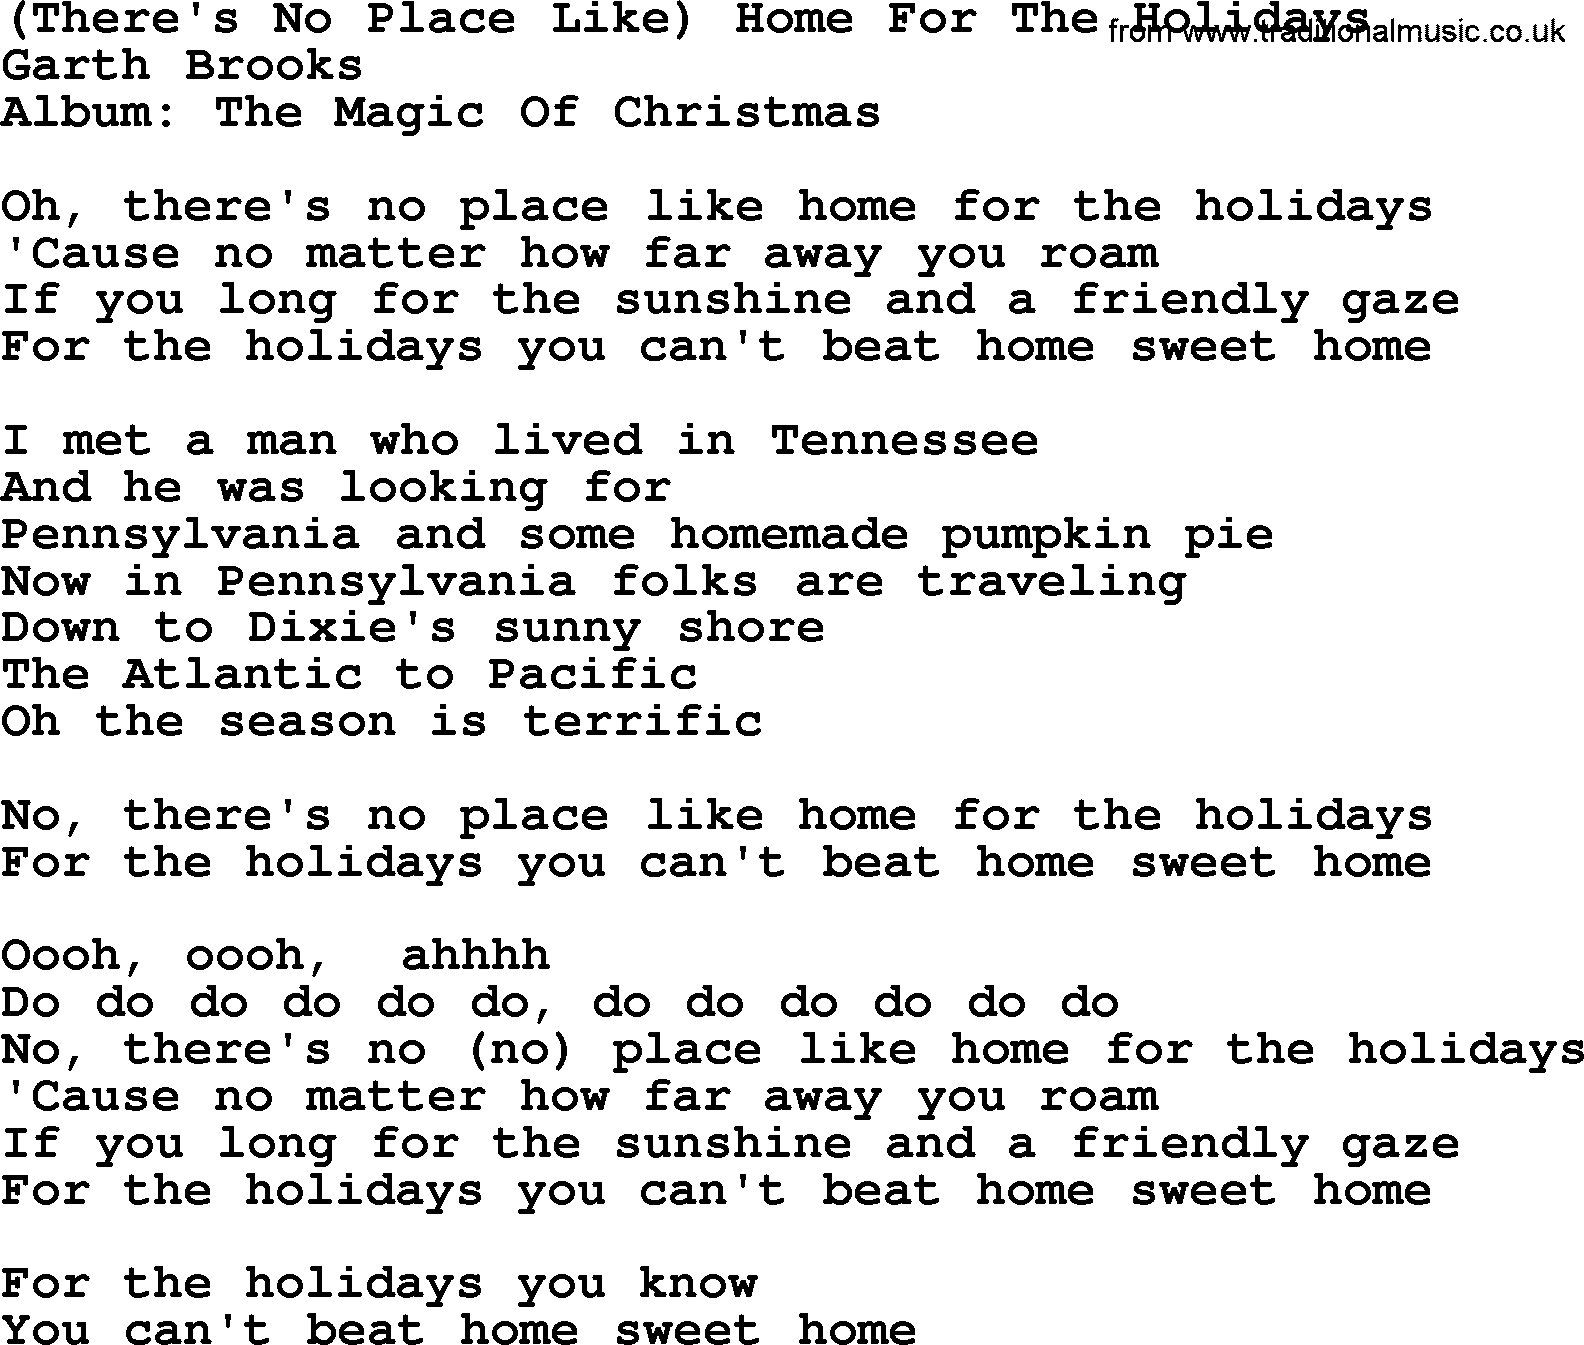 Theres No Place Like Home For The Holidays by Garth Brooks lyrics